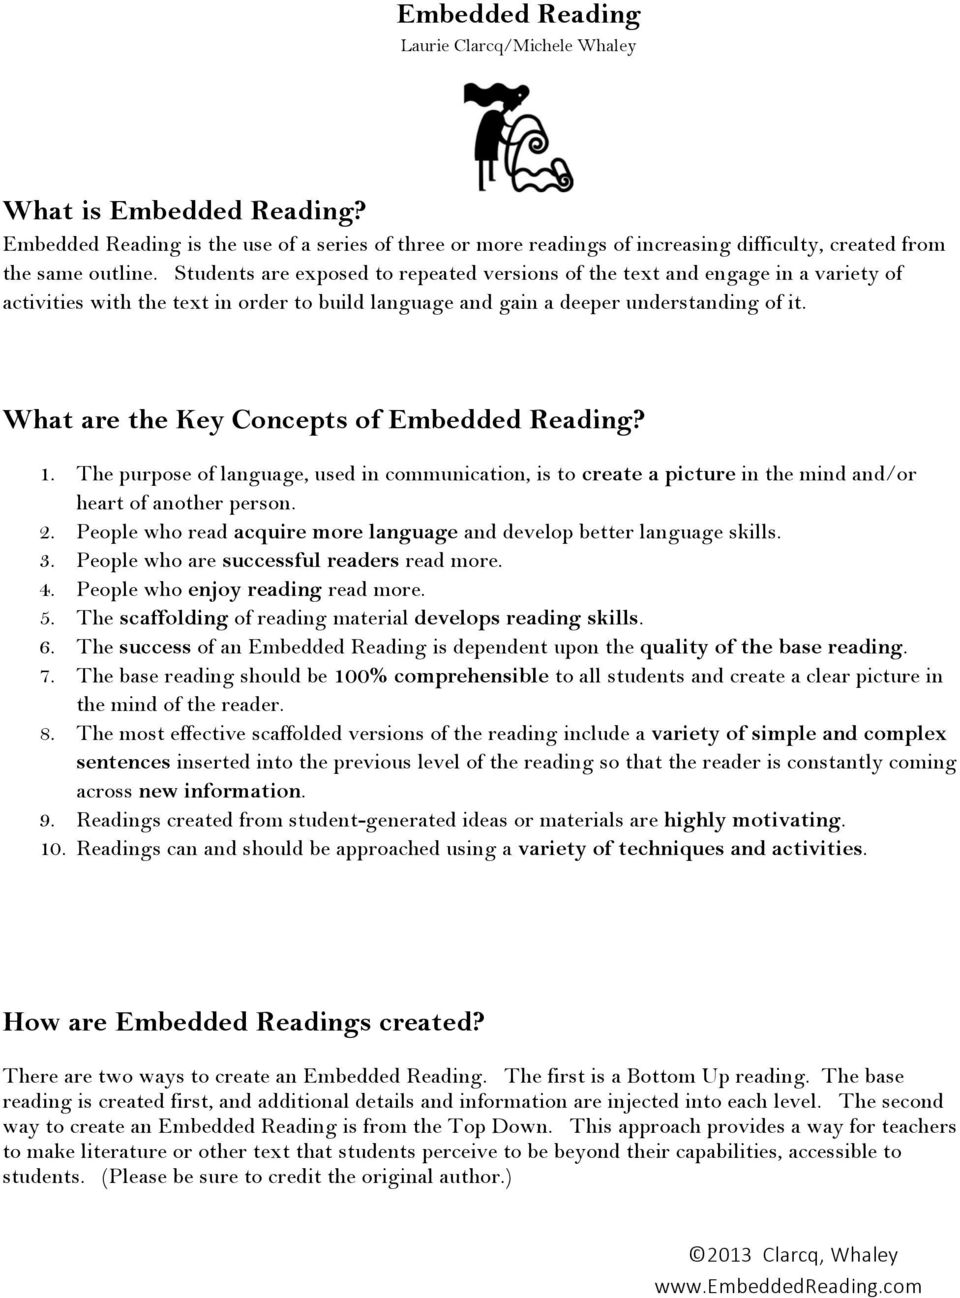 What are the Key Concepts of Embedded Reading? 1. The purpose of language, used in communication, is to create a picture in the mind and/or heart of another person. 2.